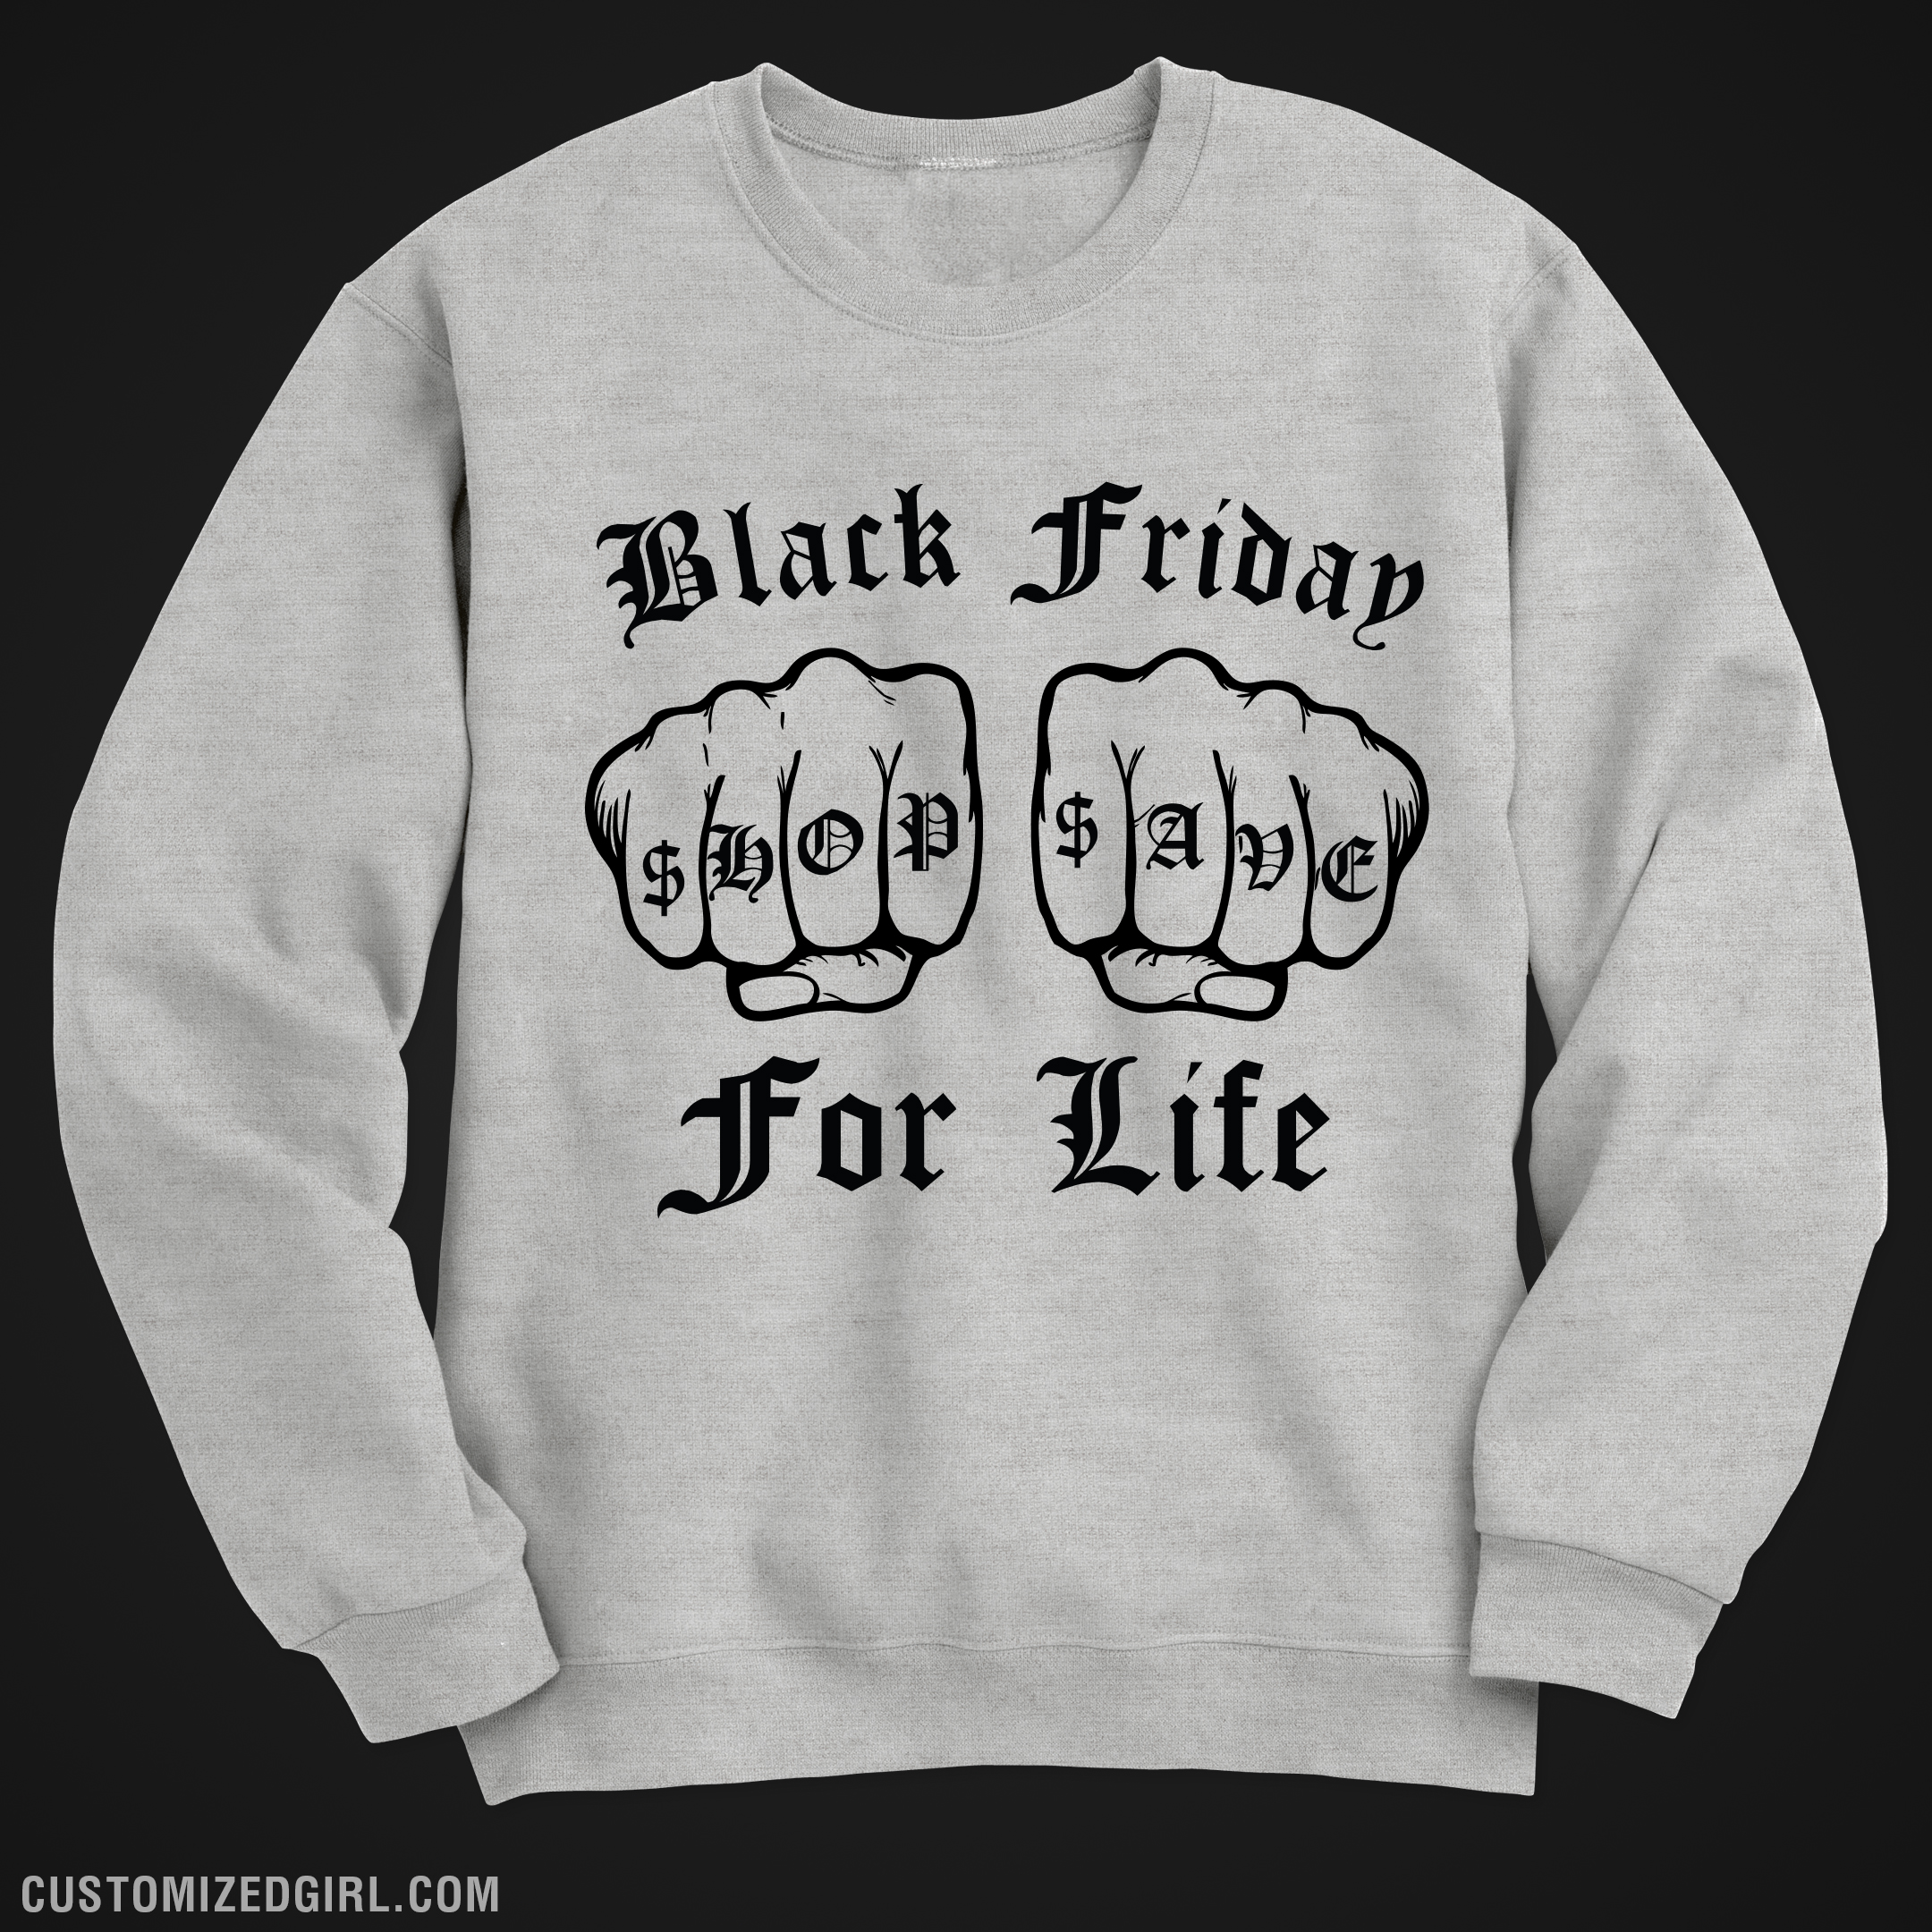 Black Friday FOR LIFE!